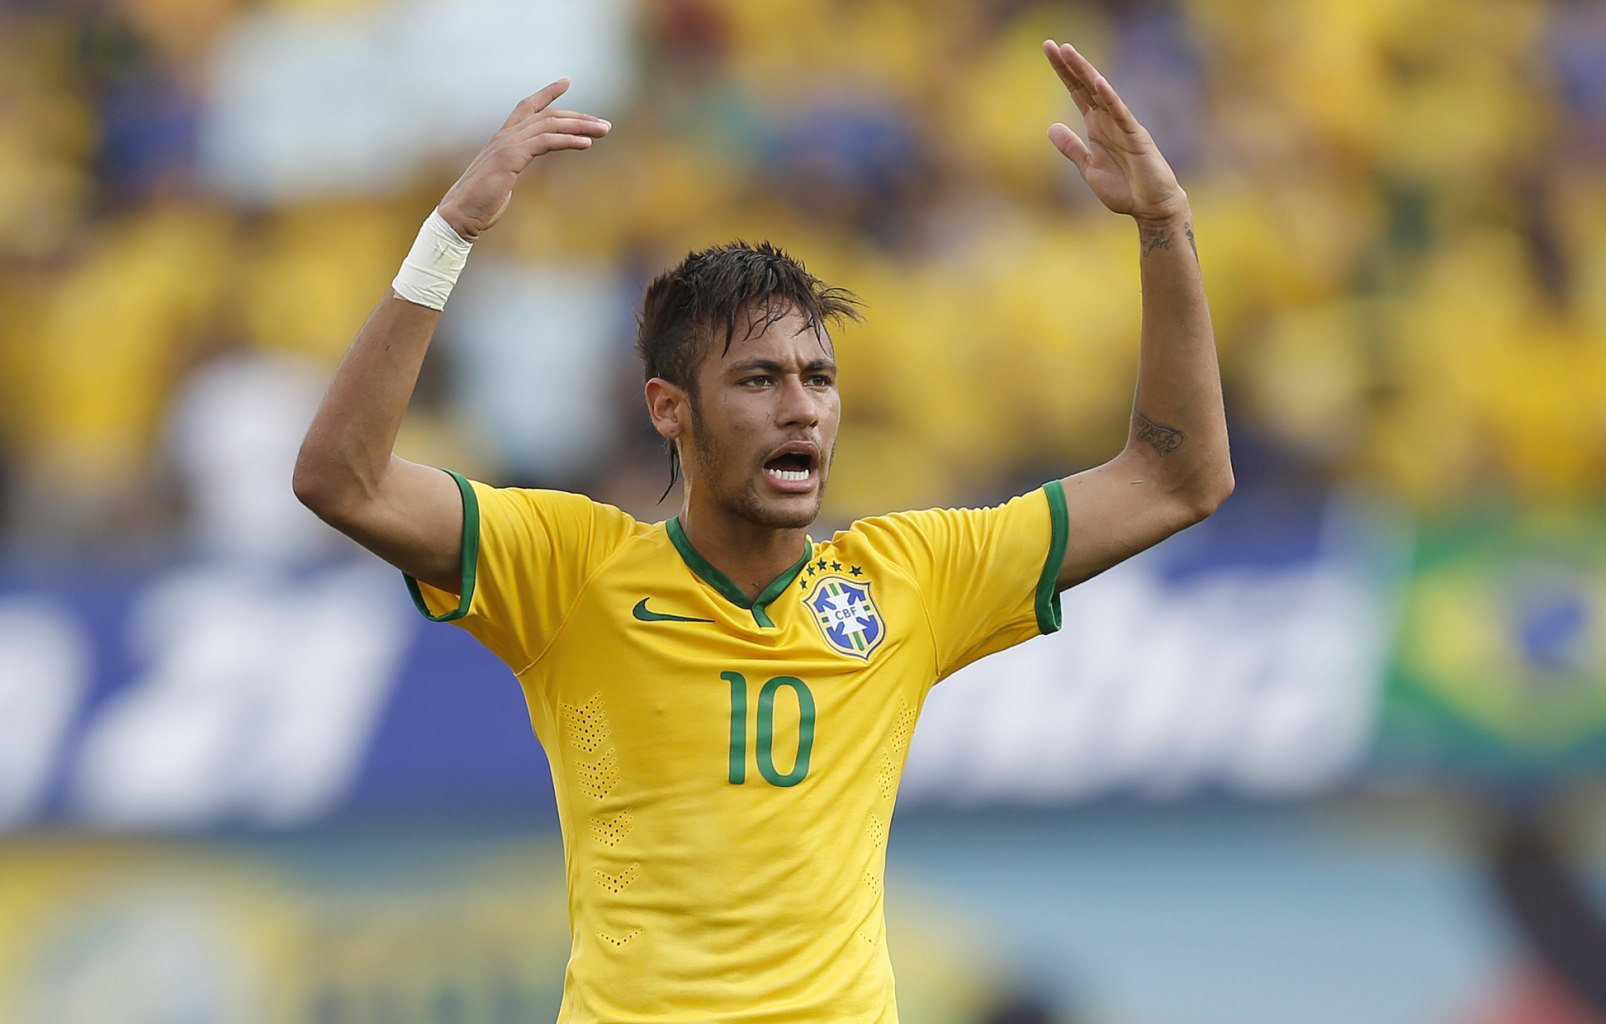 Neymar waving and protesting during a Brazil game